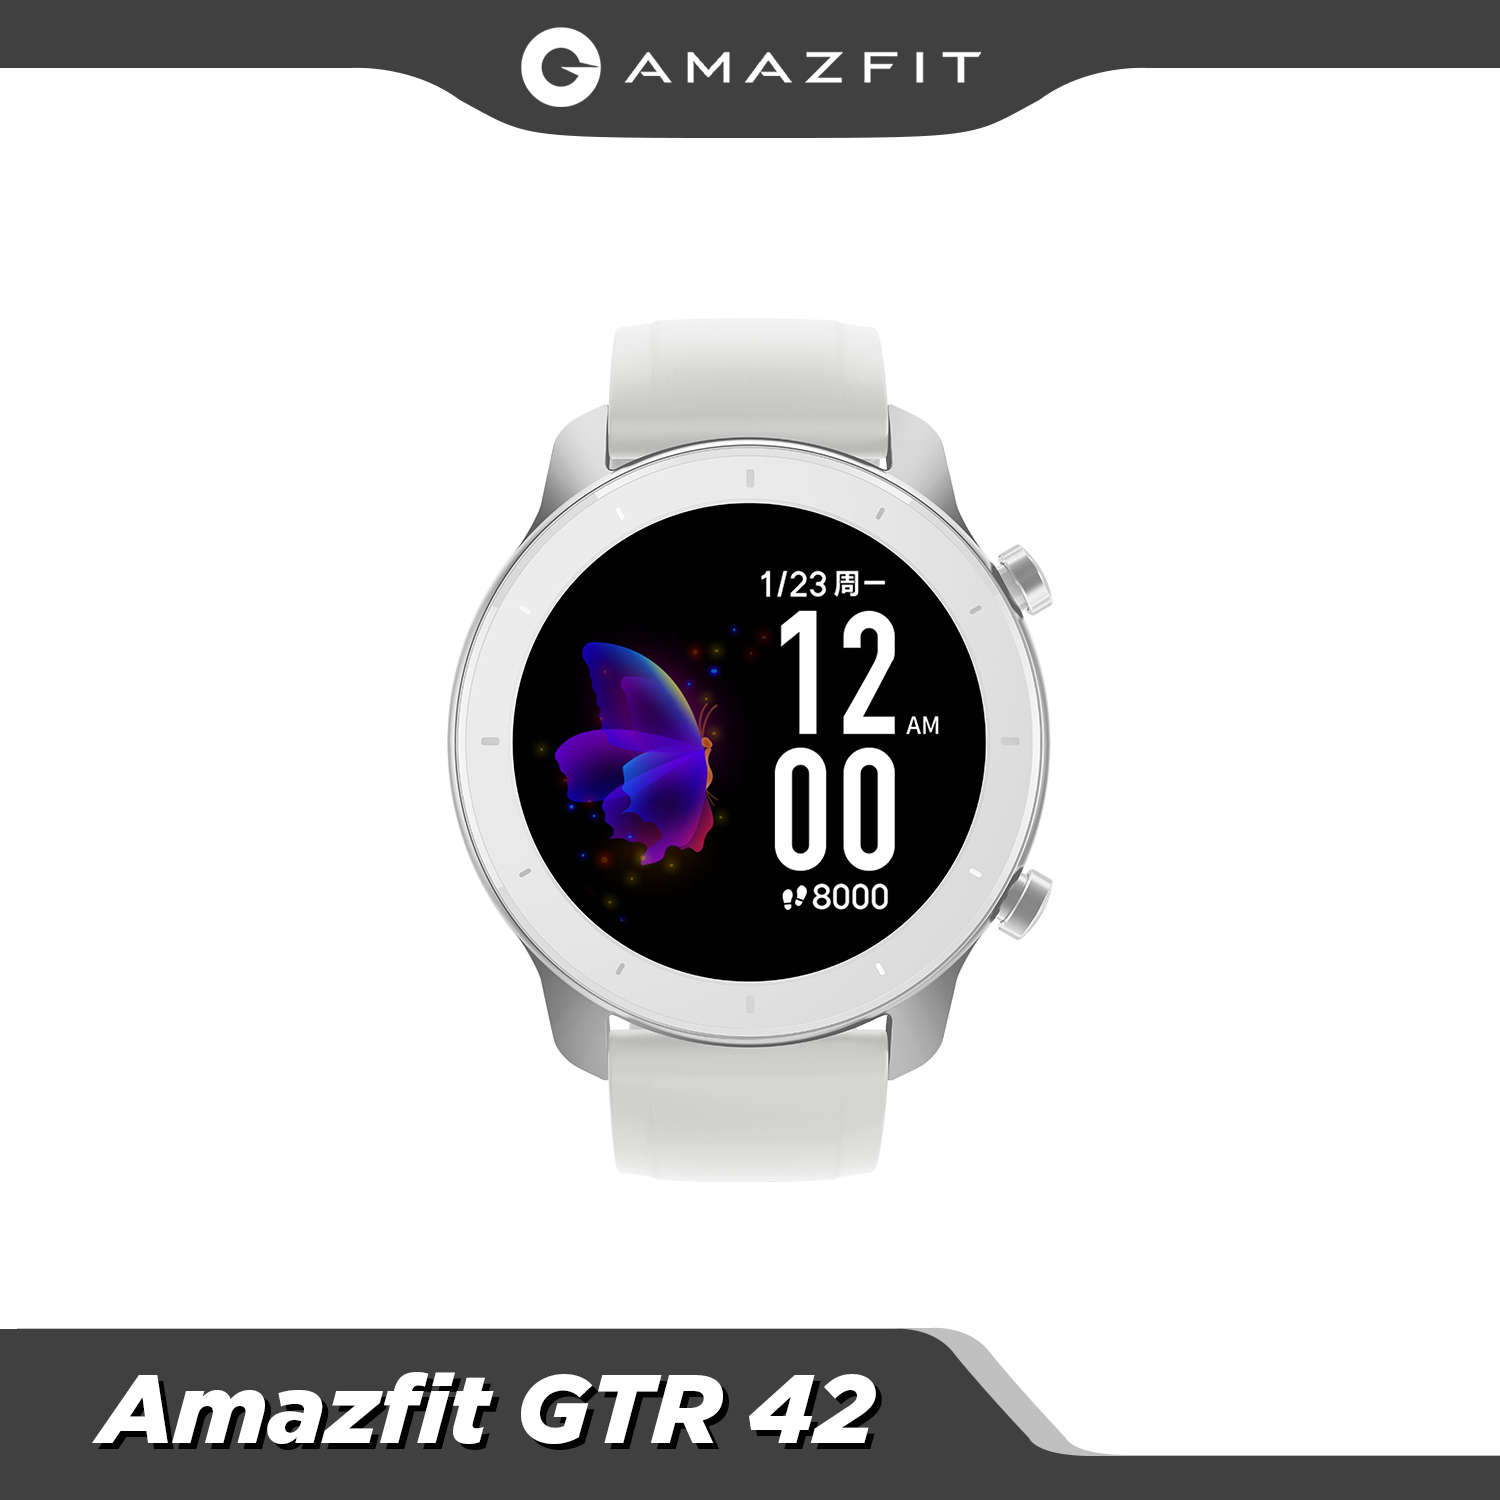 Permalink to 【24h ship】Global New Amazfit GTR 42mm Smart Watch 5ATM waterproof Smartwatch 12 Days Battery Music Control For Android IOS